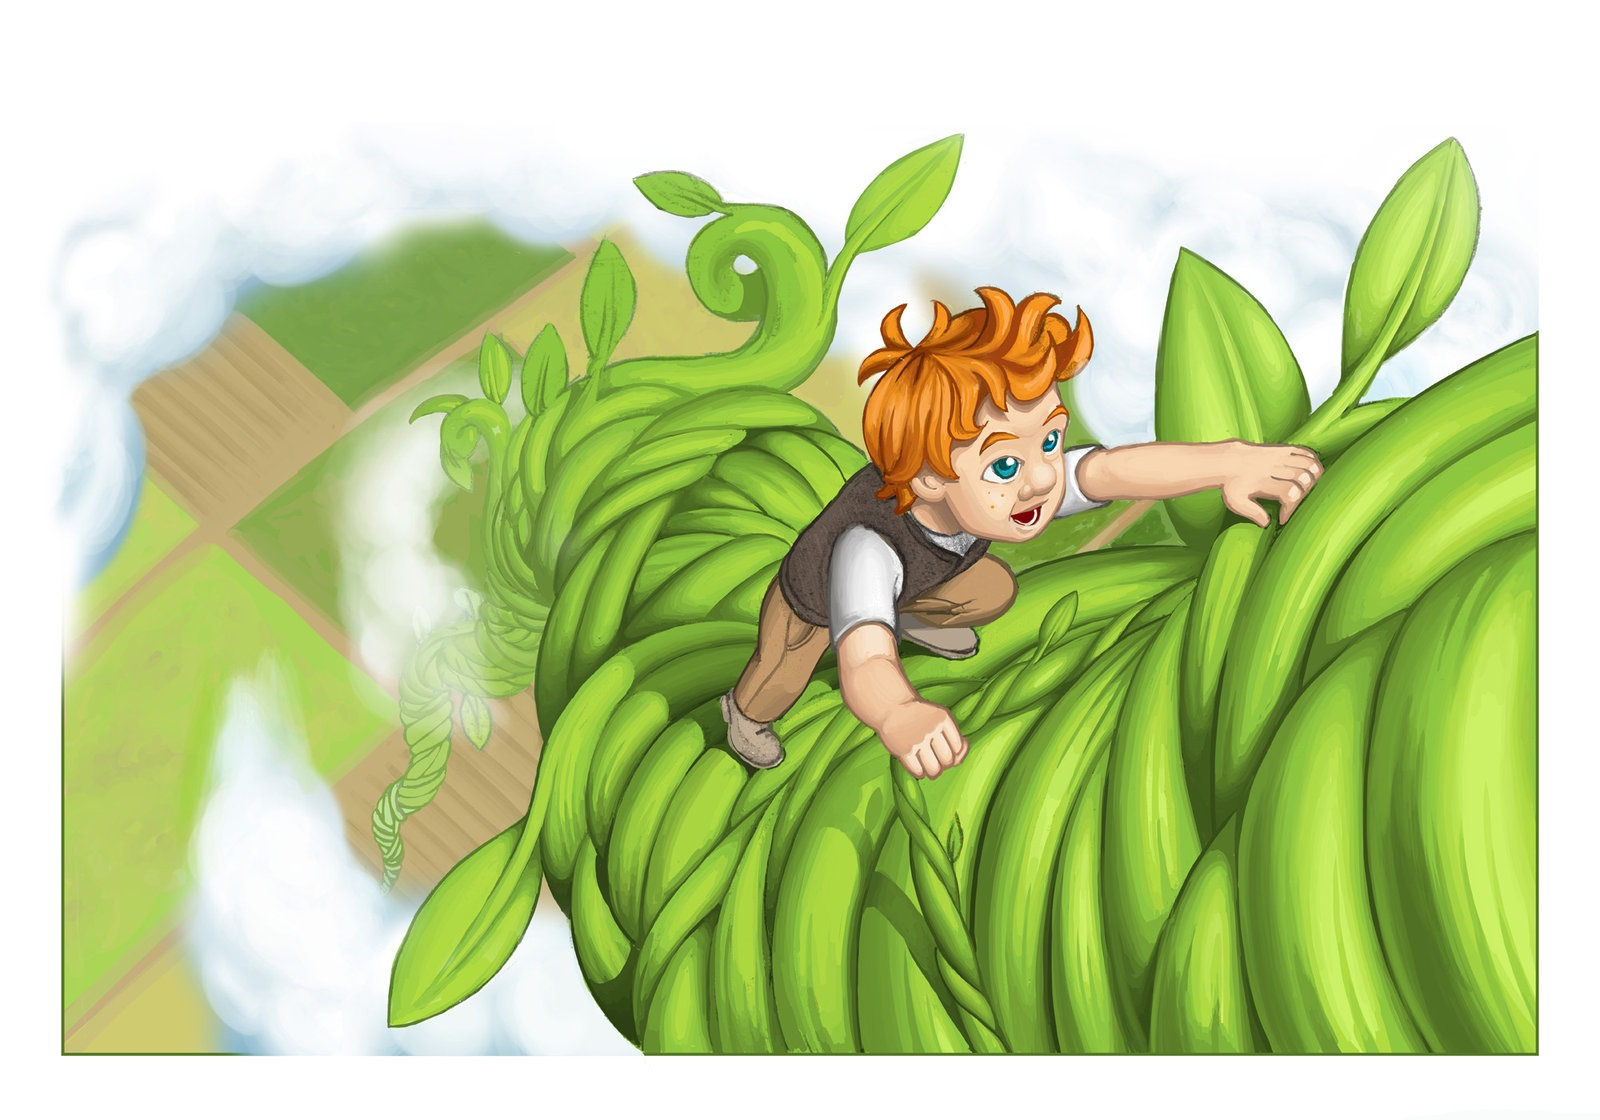 jack and the beanstalk images cartoon